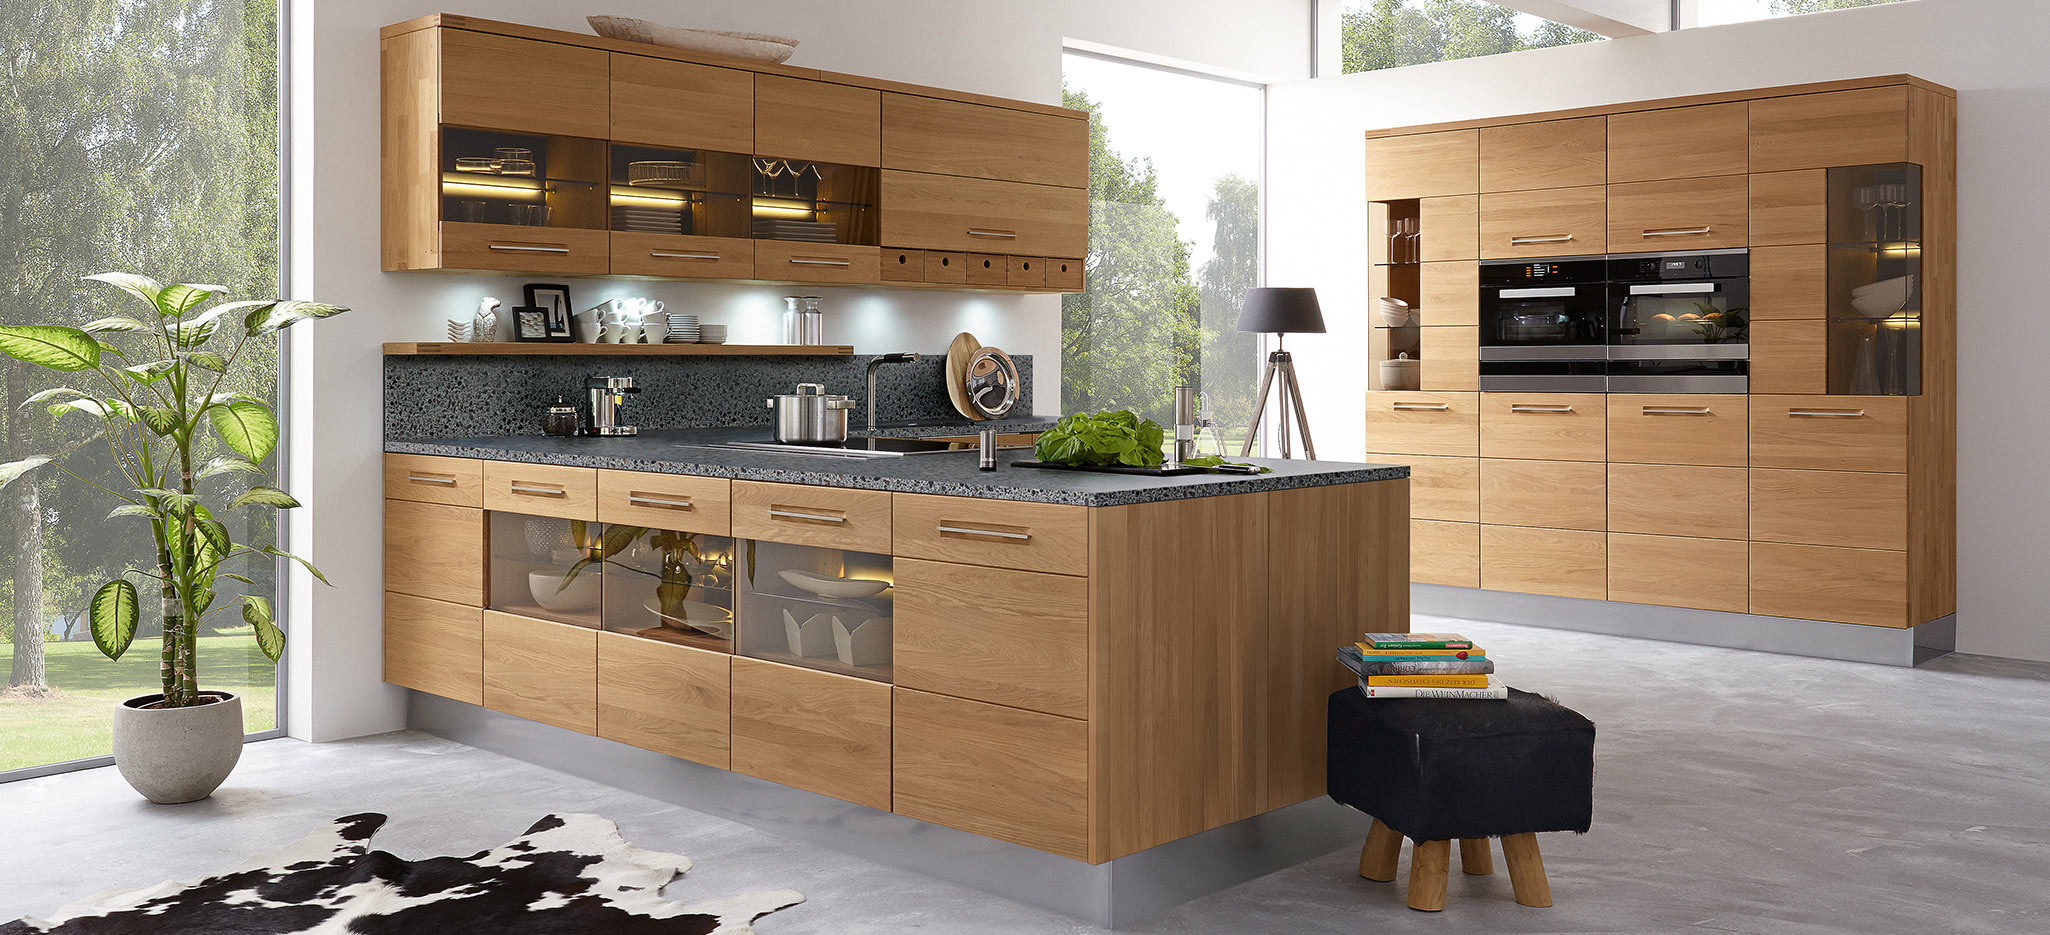 High quality solid wood kitchen Vicenca » here at decker.de ✓